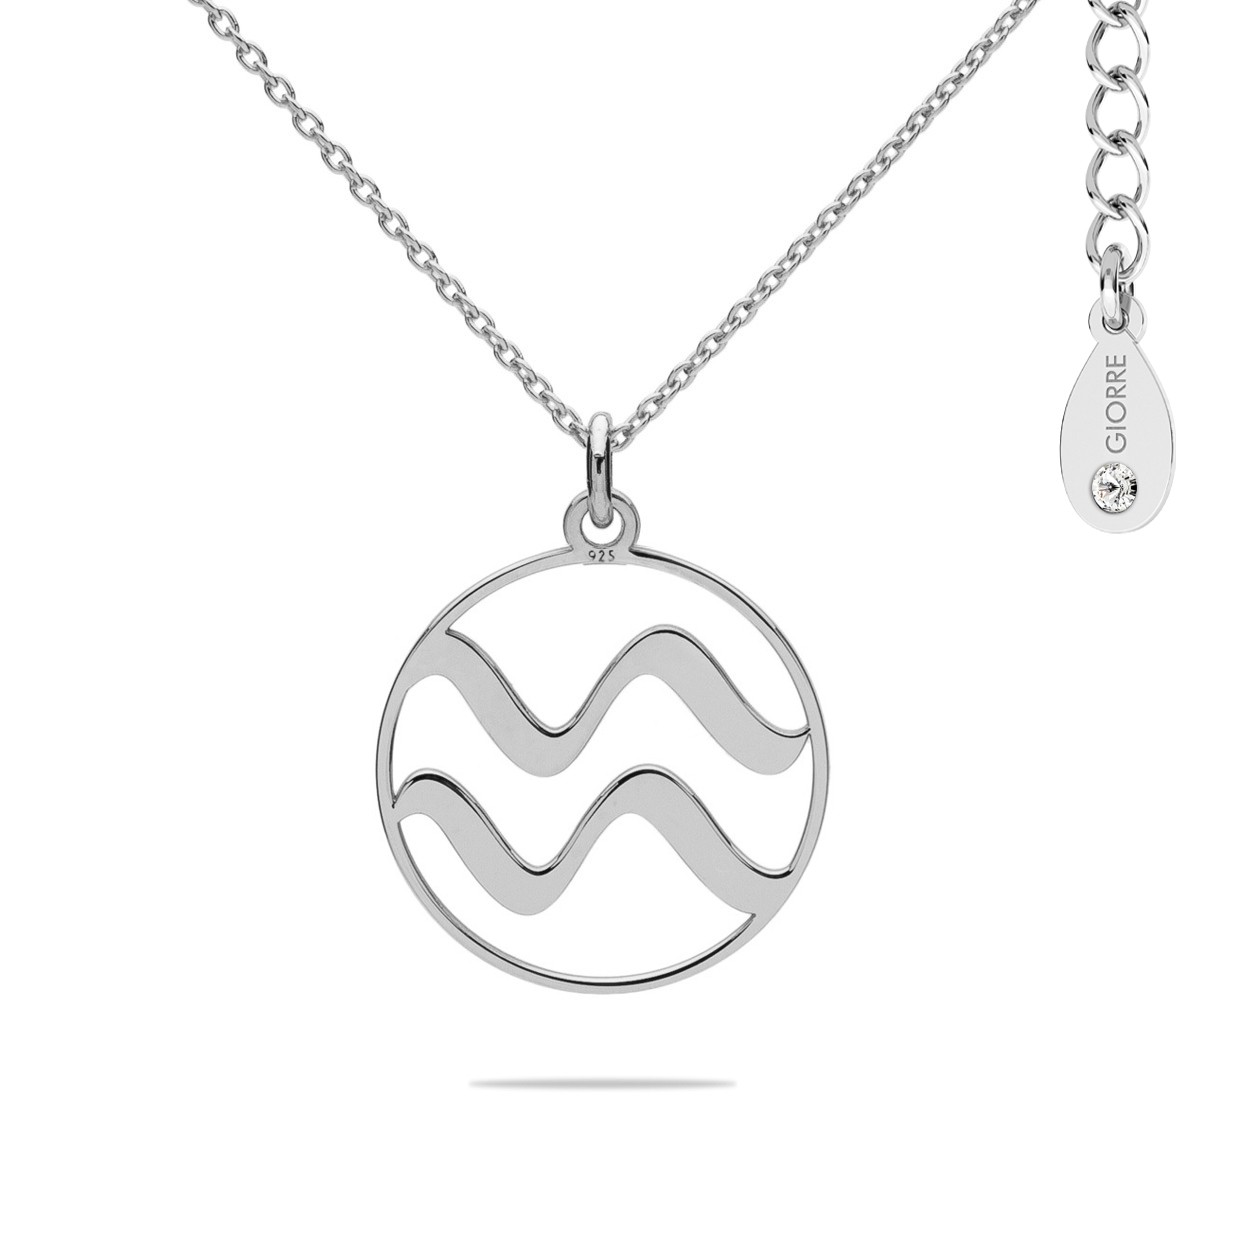 AQUARIUS zodiac sign necklace with Swarovski Crystals sterling silver 925